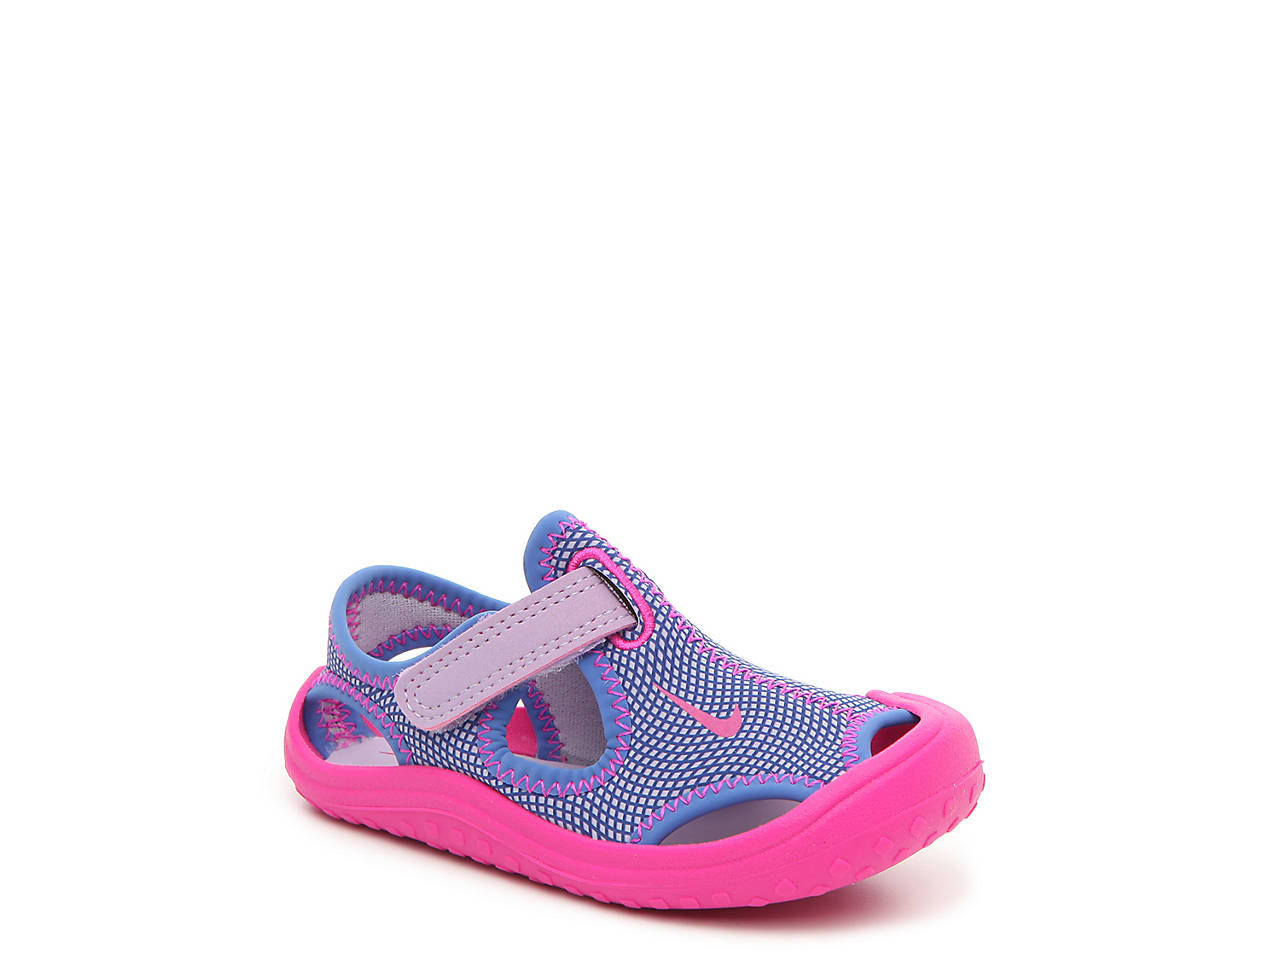 609dfc3c67aa ... purchase sunray protect infant toddler sandal d6d76 0769e